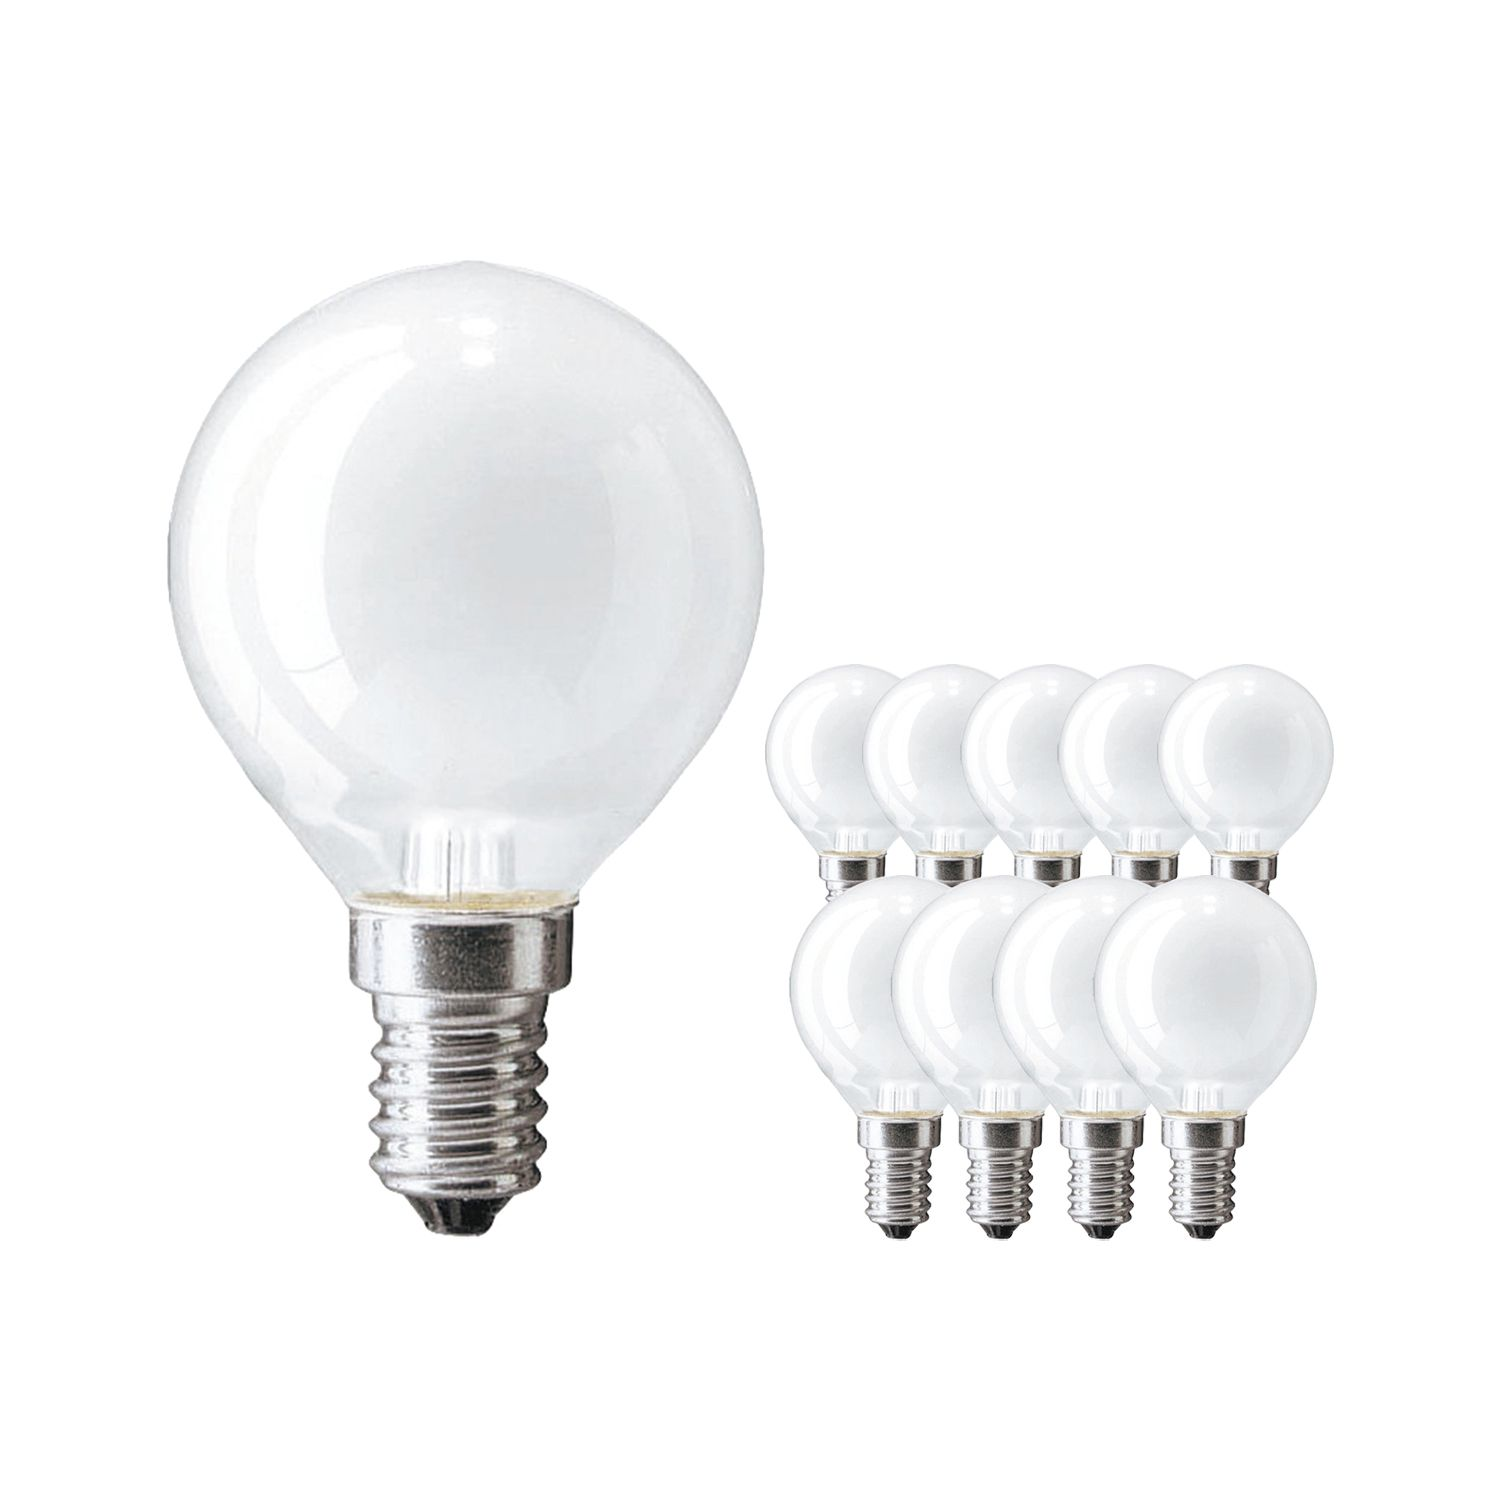 Multipack 10x Standard Incandescent Bulb Frosted P45 E14 60W 230V